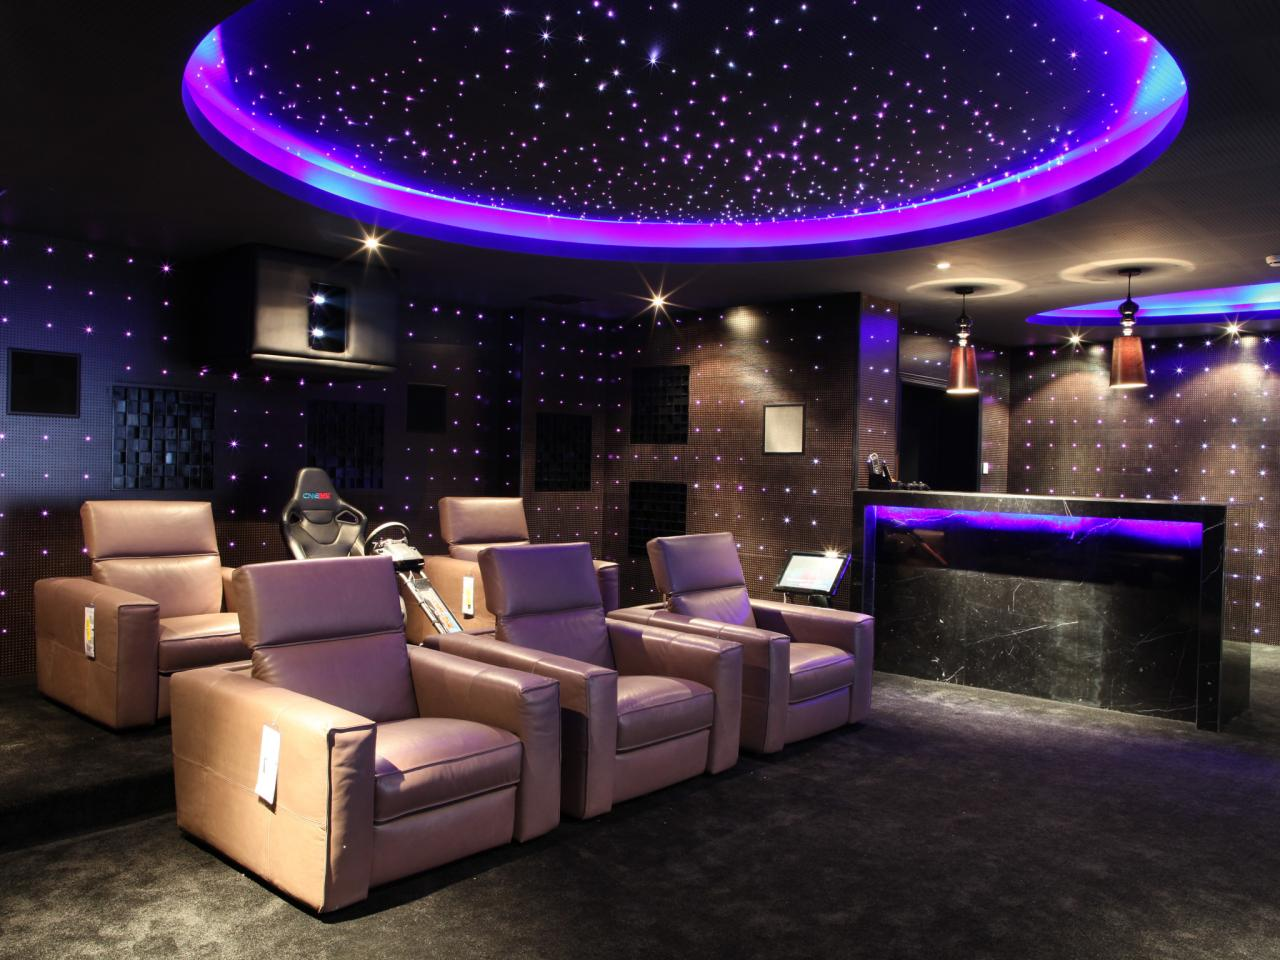 home theater design ideas - Home Theater Rooms Design Ideas